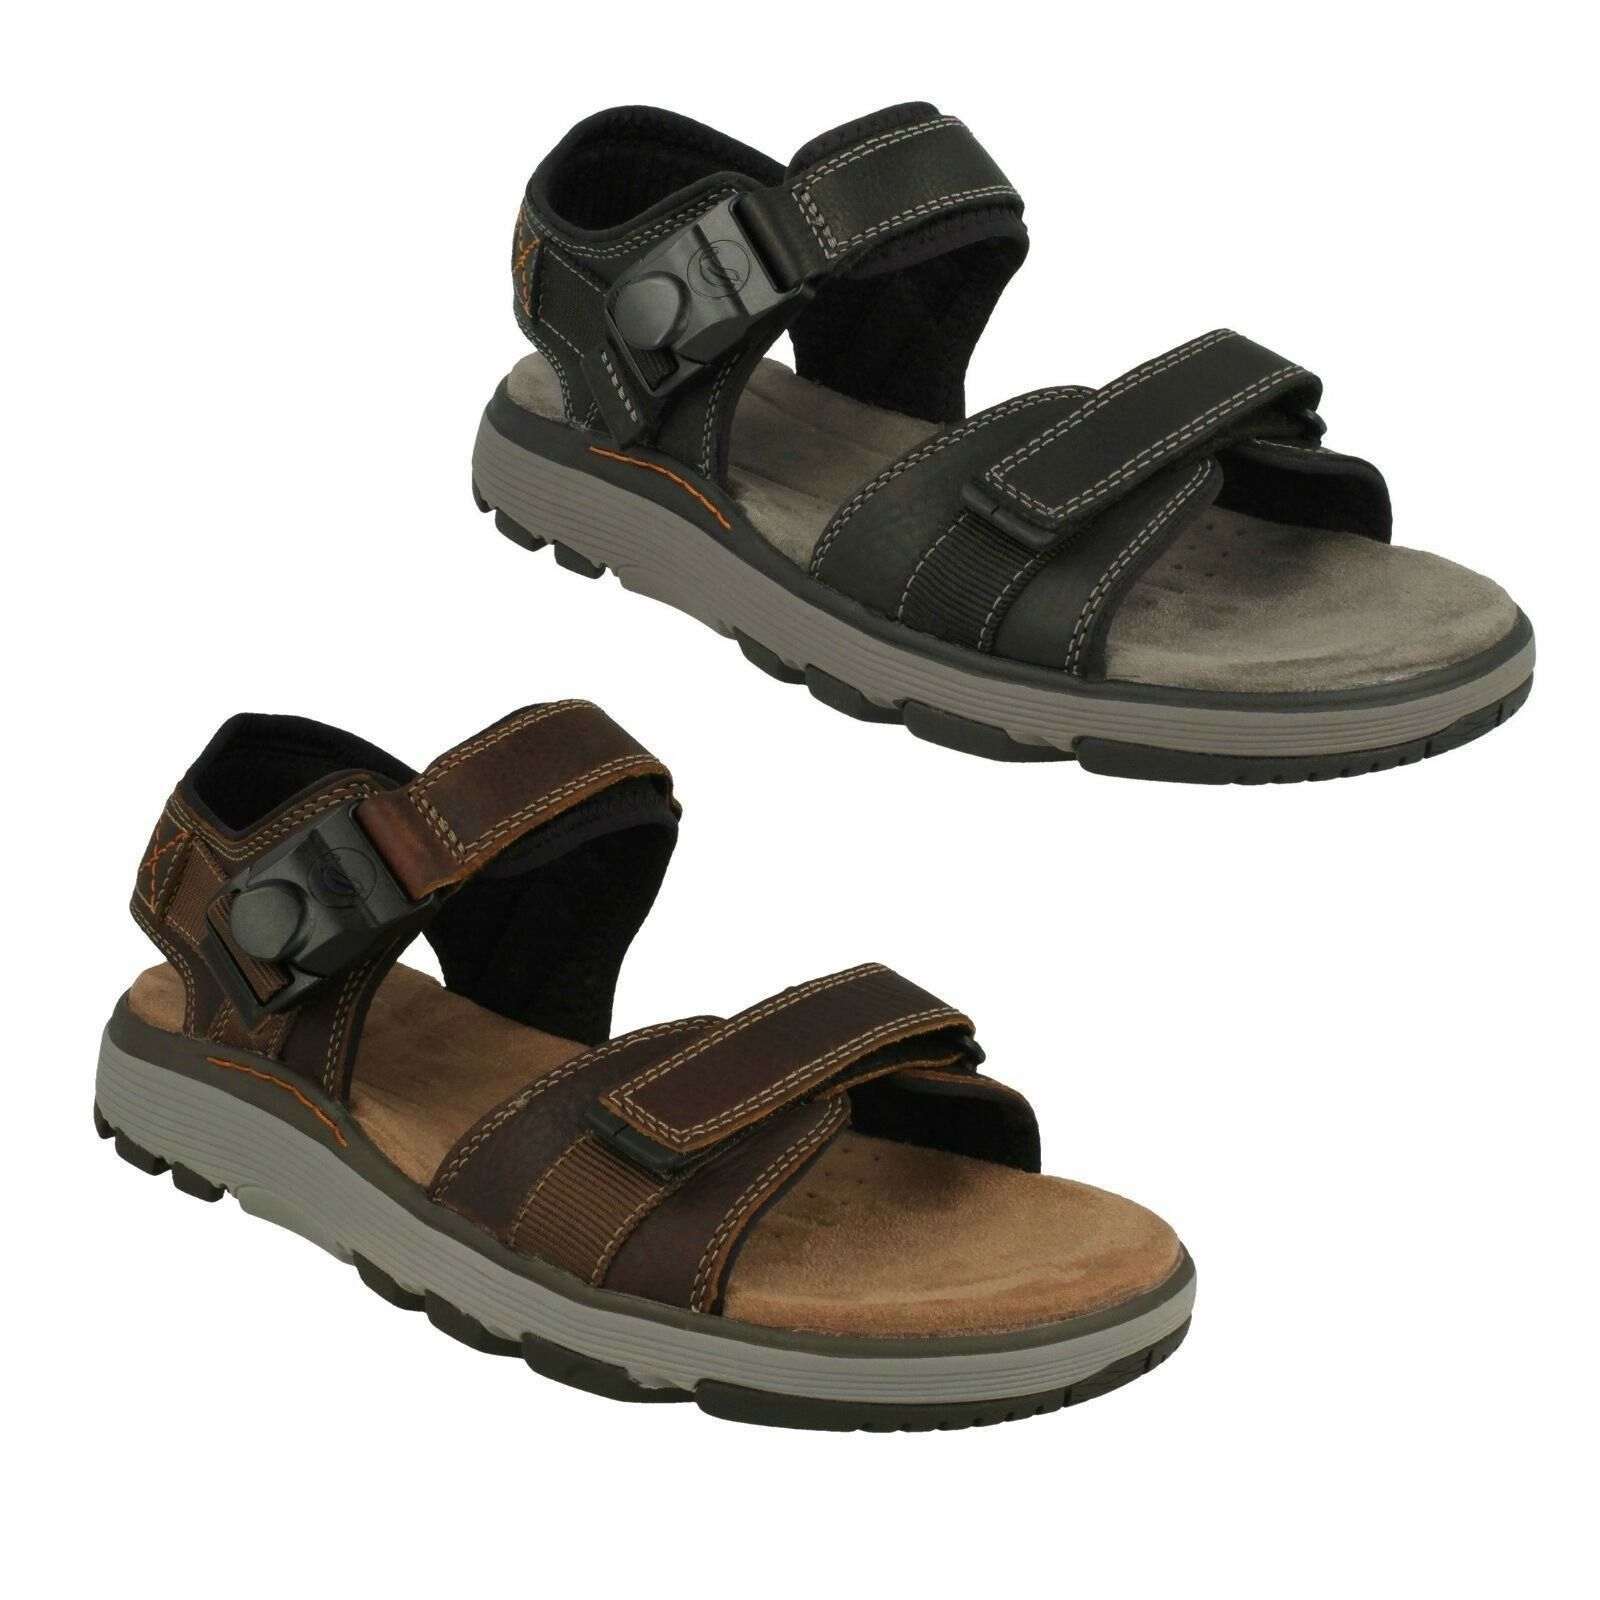 Herren CLARKS LEATHER UNSTRUCTUROT BUCKLE CASUAL SUMMER SUMMER CASUAL SANDALS Schuhe UN TREK PART 93c863